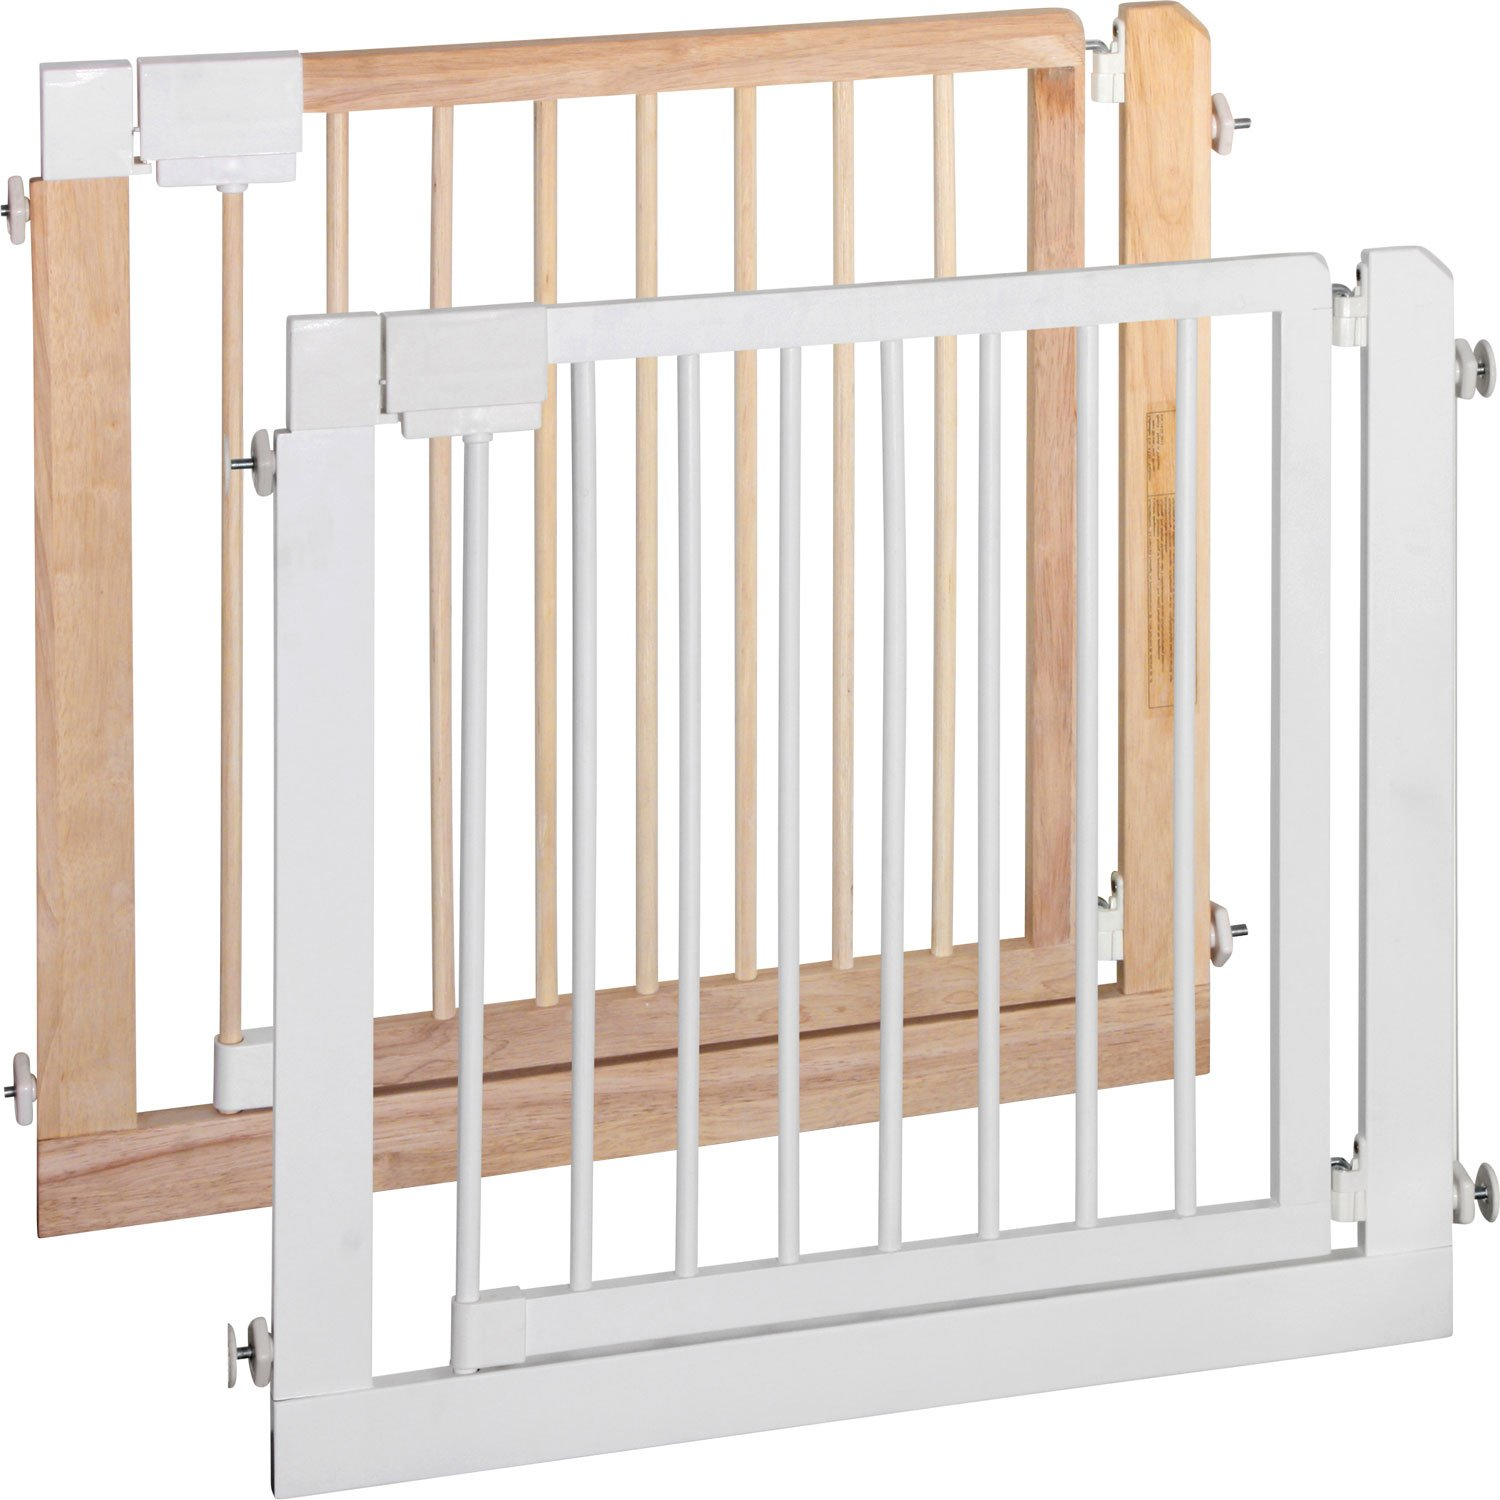 IB-Style - Door- & Stairgate Safetygate Kolby | 86 - 92 cm | 33.9